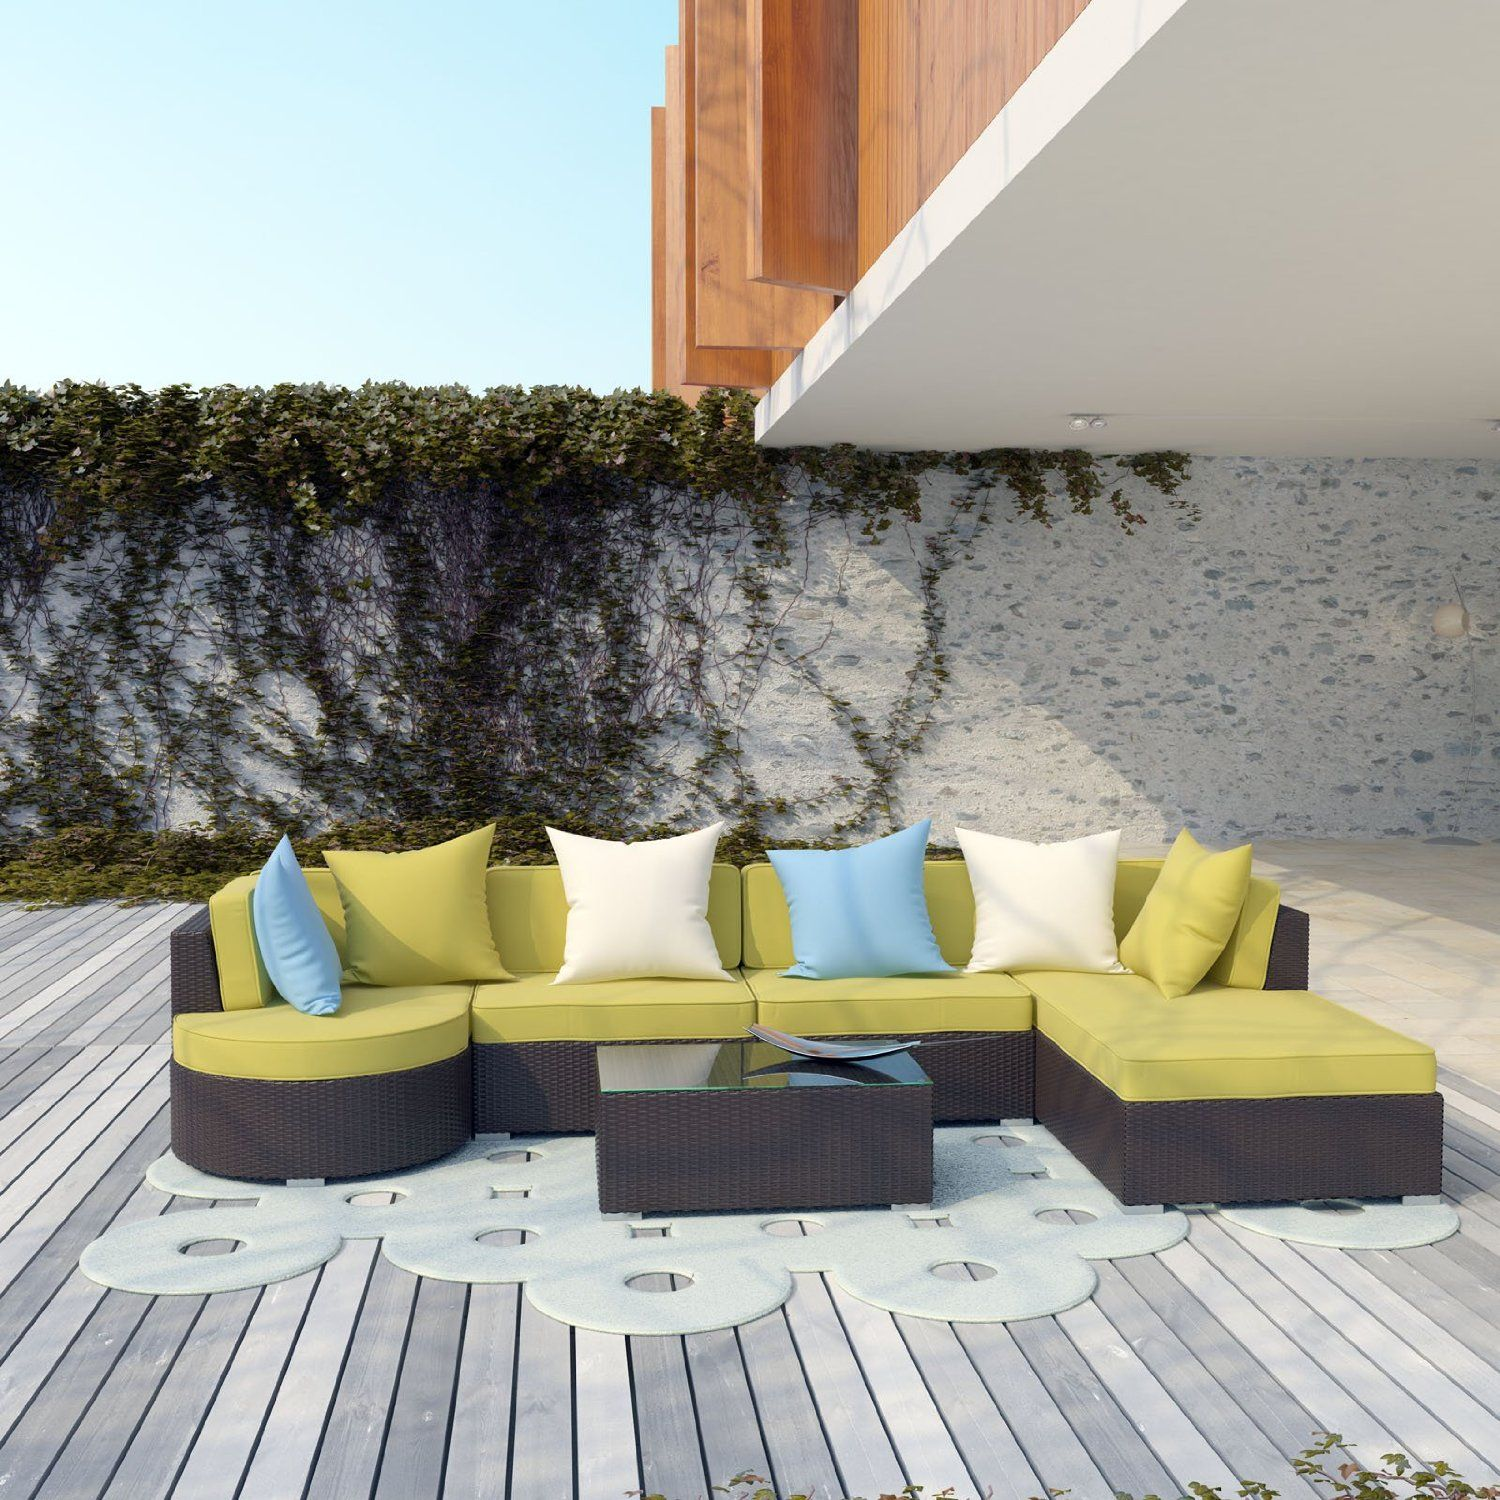 Amazon LexMod Montana Outdoor Wicker Rattan Patio Sectional